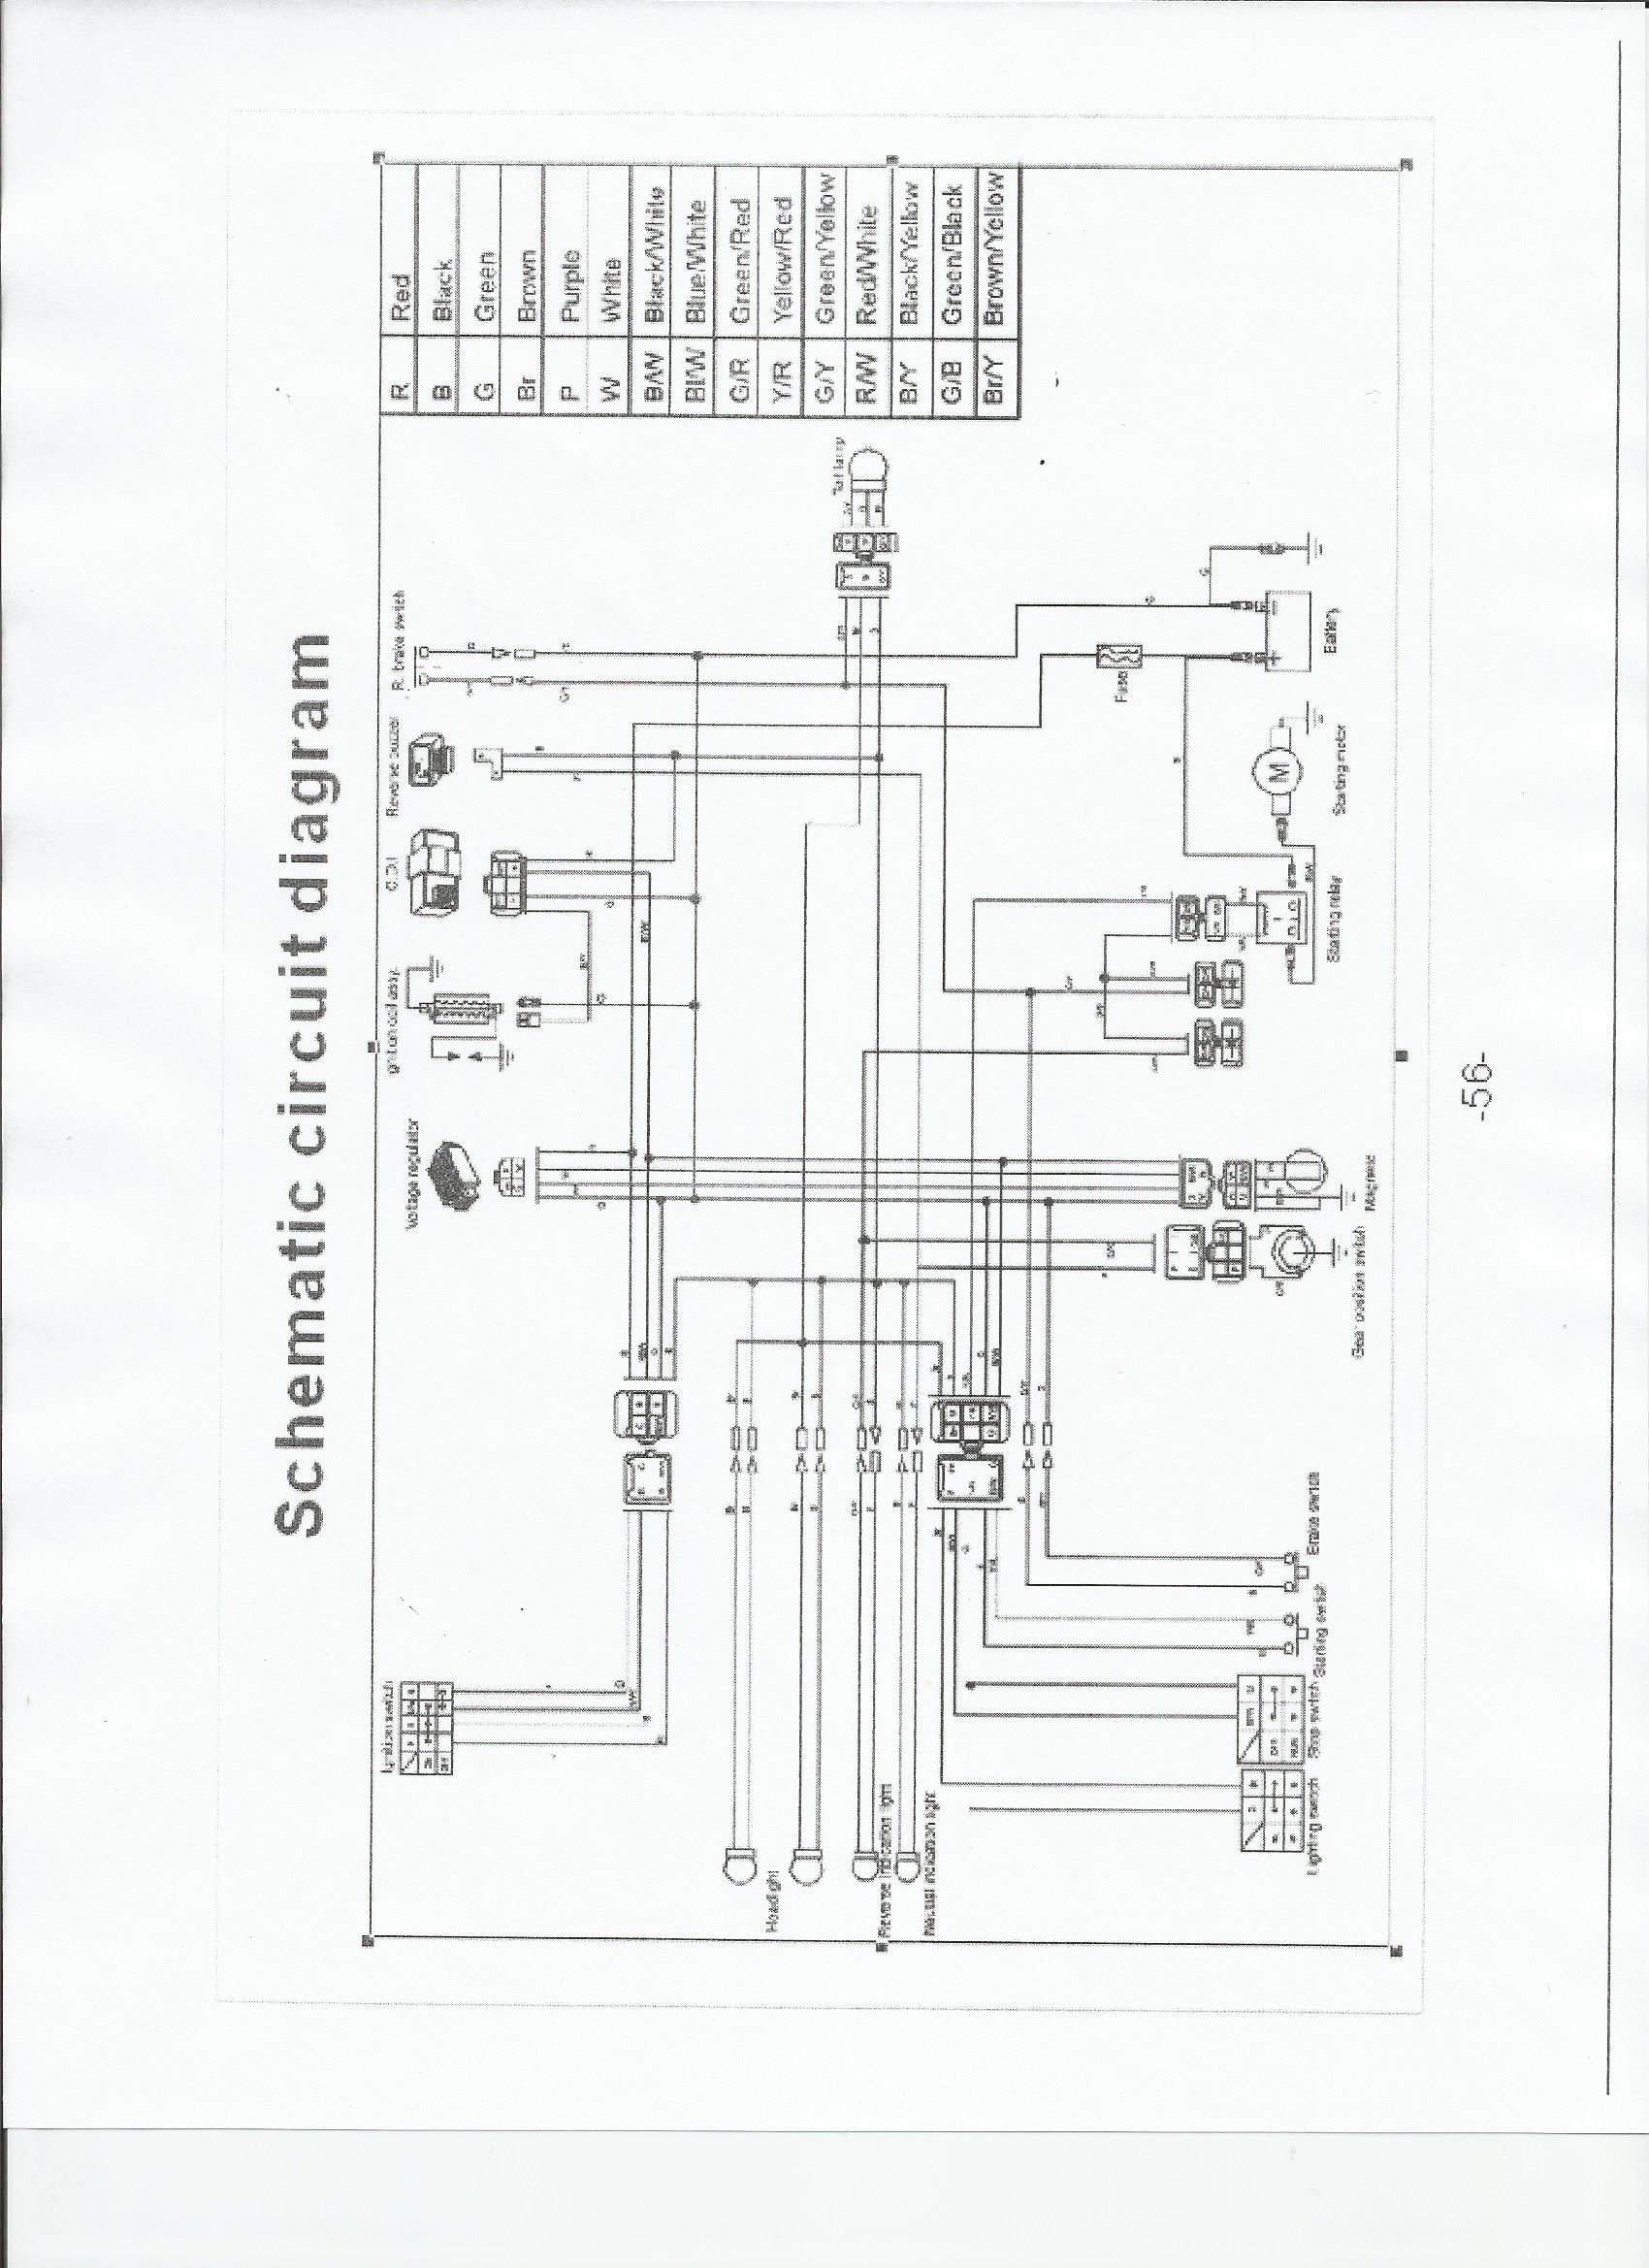 tao tao wiring schematic taotao mini and youth atv wiring schematic familygokarts support taotao ata110 b wiring diagram at mifinder.co